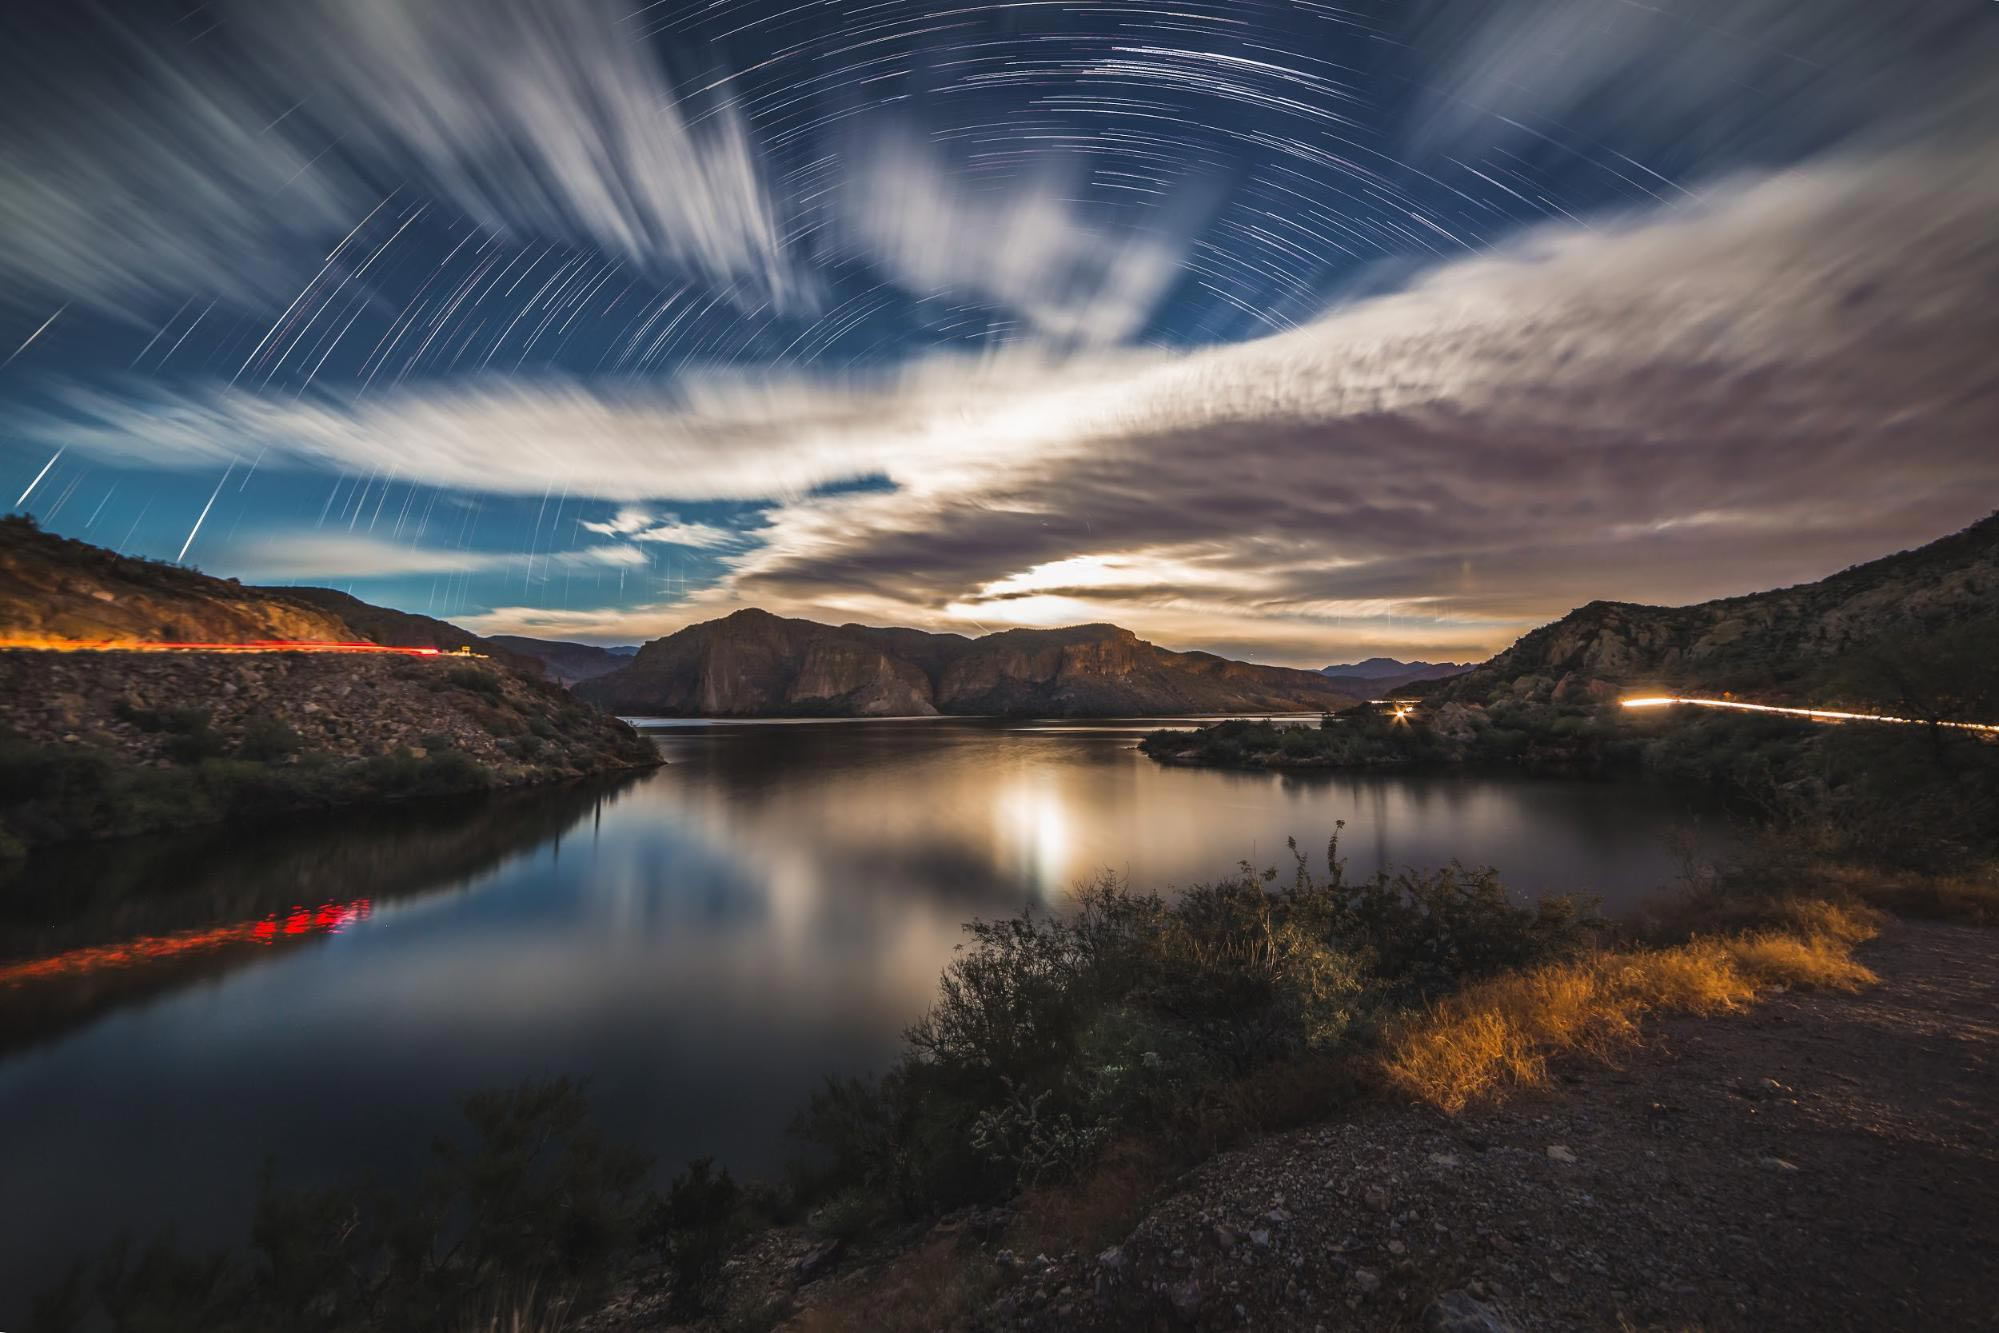 Moonlit Landscapes Lake Star Trails Photo Experience